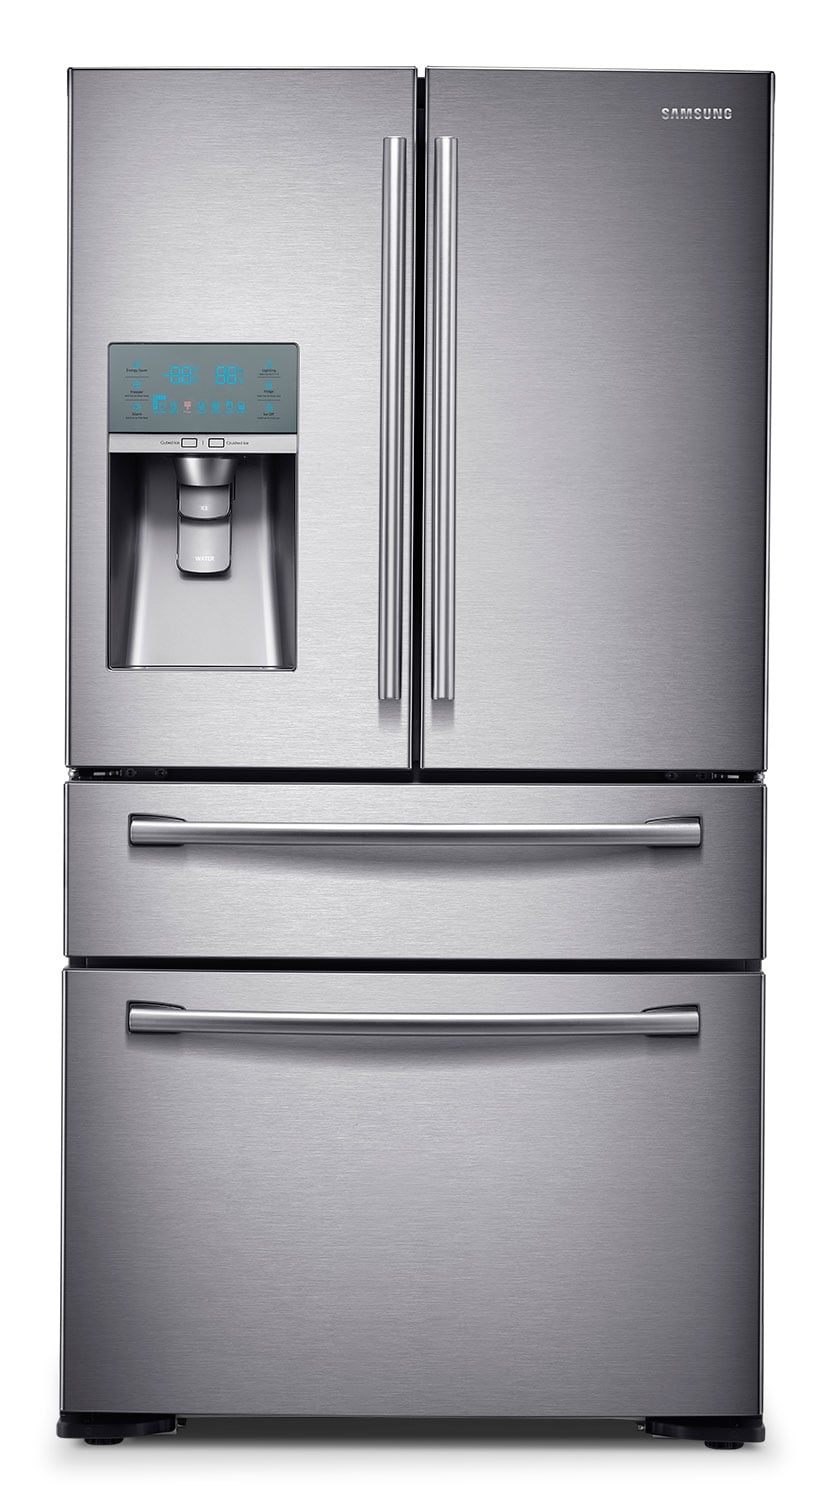 Samsung Stainless Steel French Door Refrigerator (23.6 Cu. Ft.) - RF24FSEDBSR